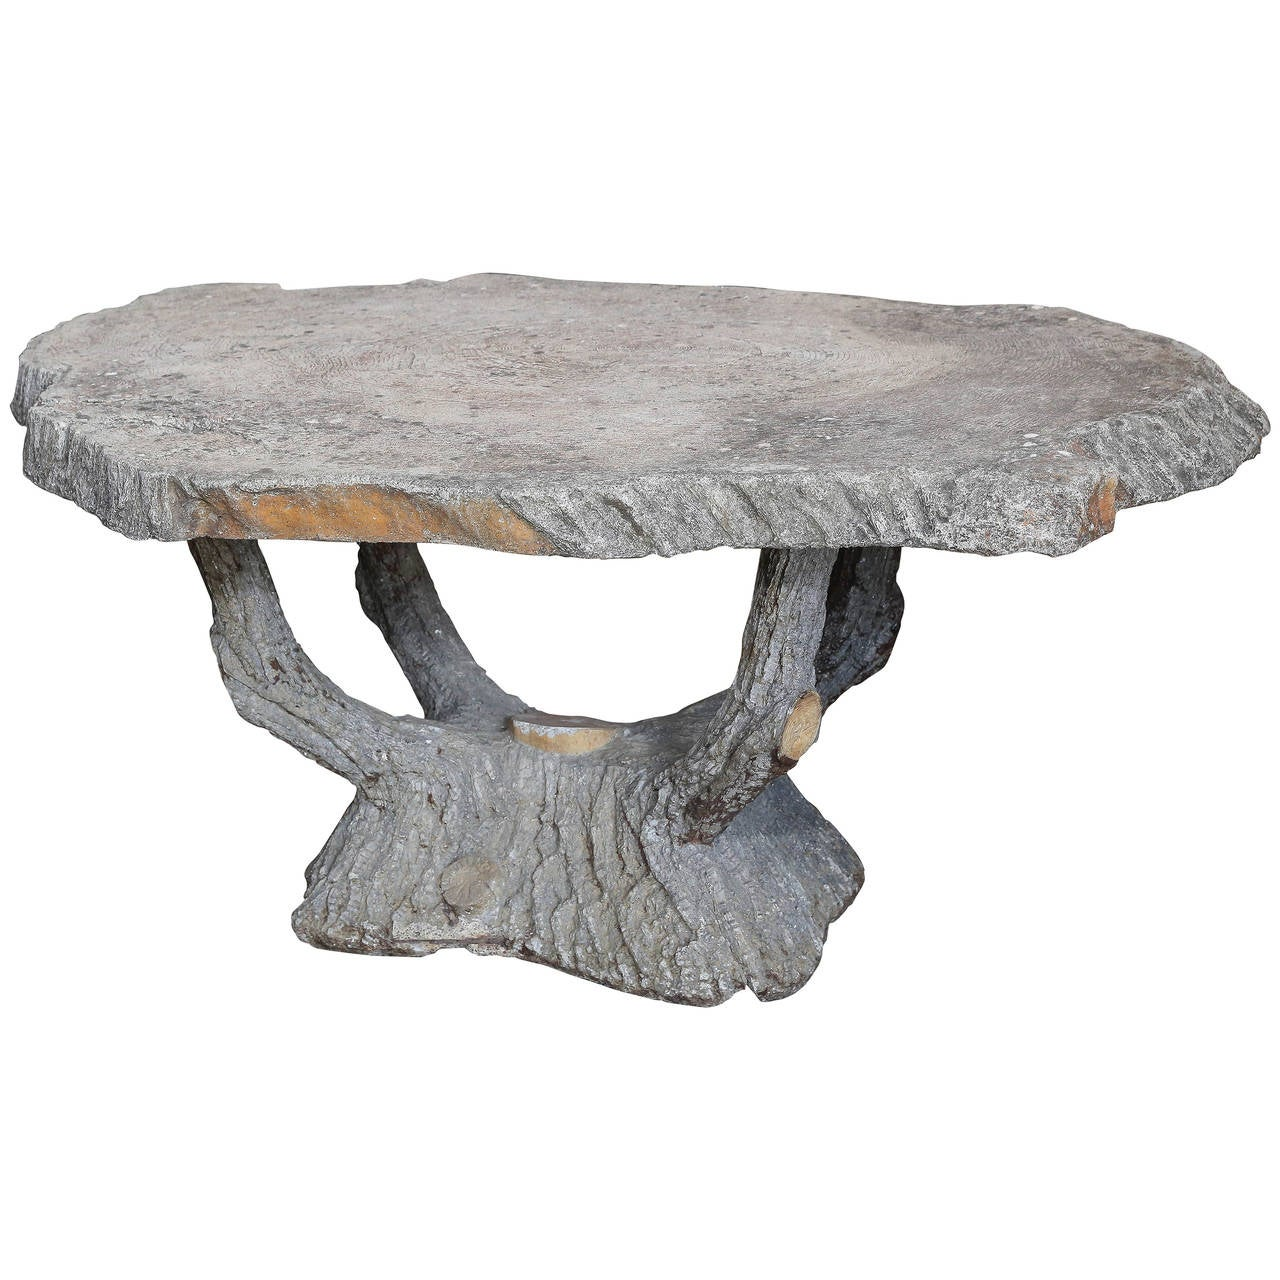 French Concrete Faux Bois Table At 1stdibs